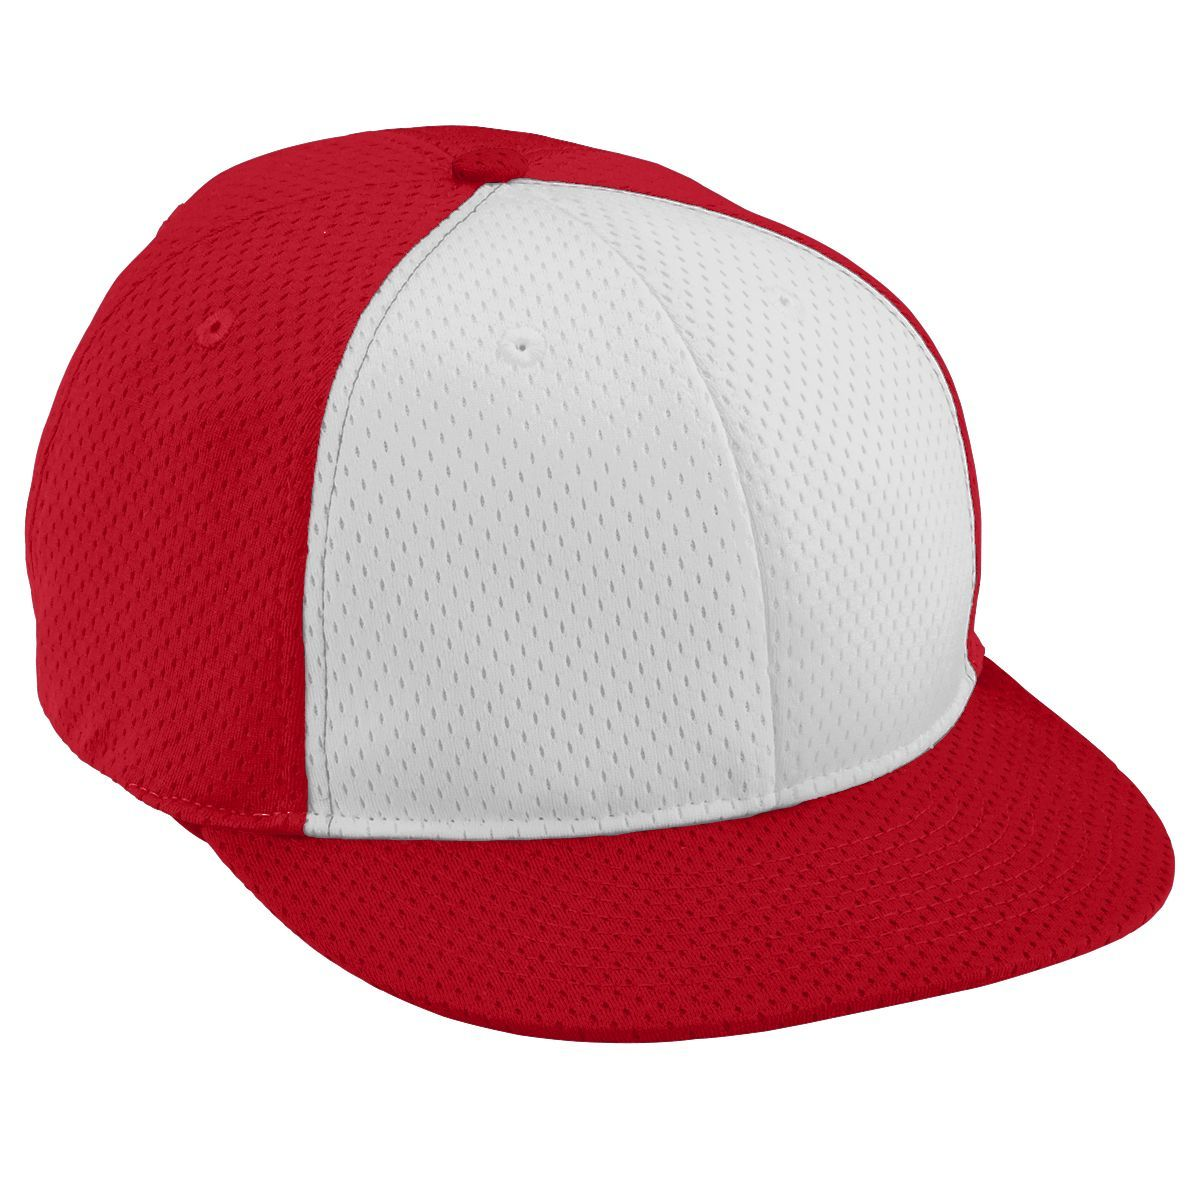 Adult Athletic Mesh Flat Bill Cap - RED/WHITE/RED